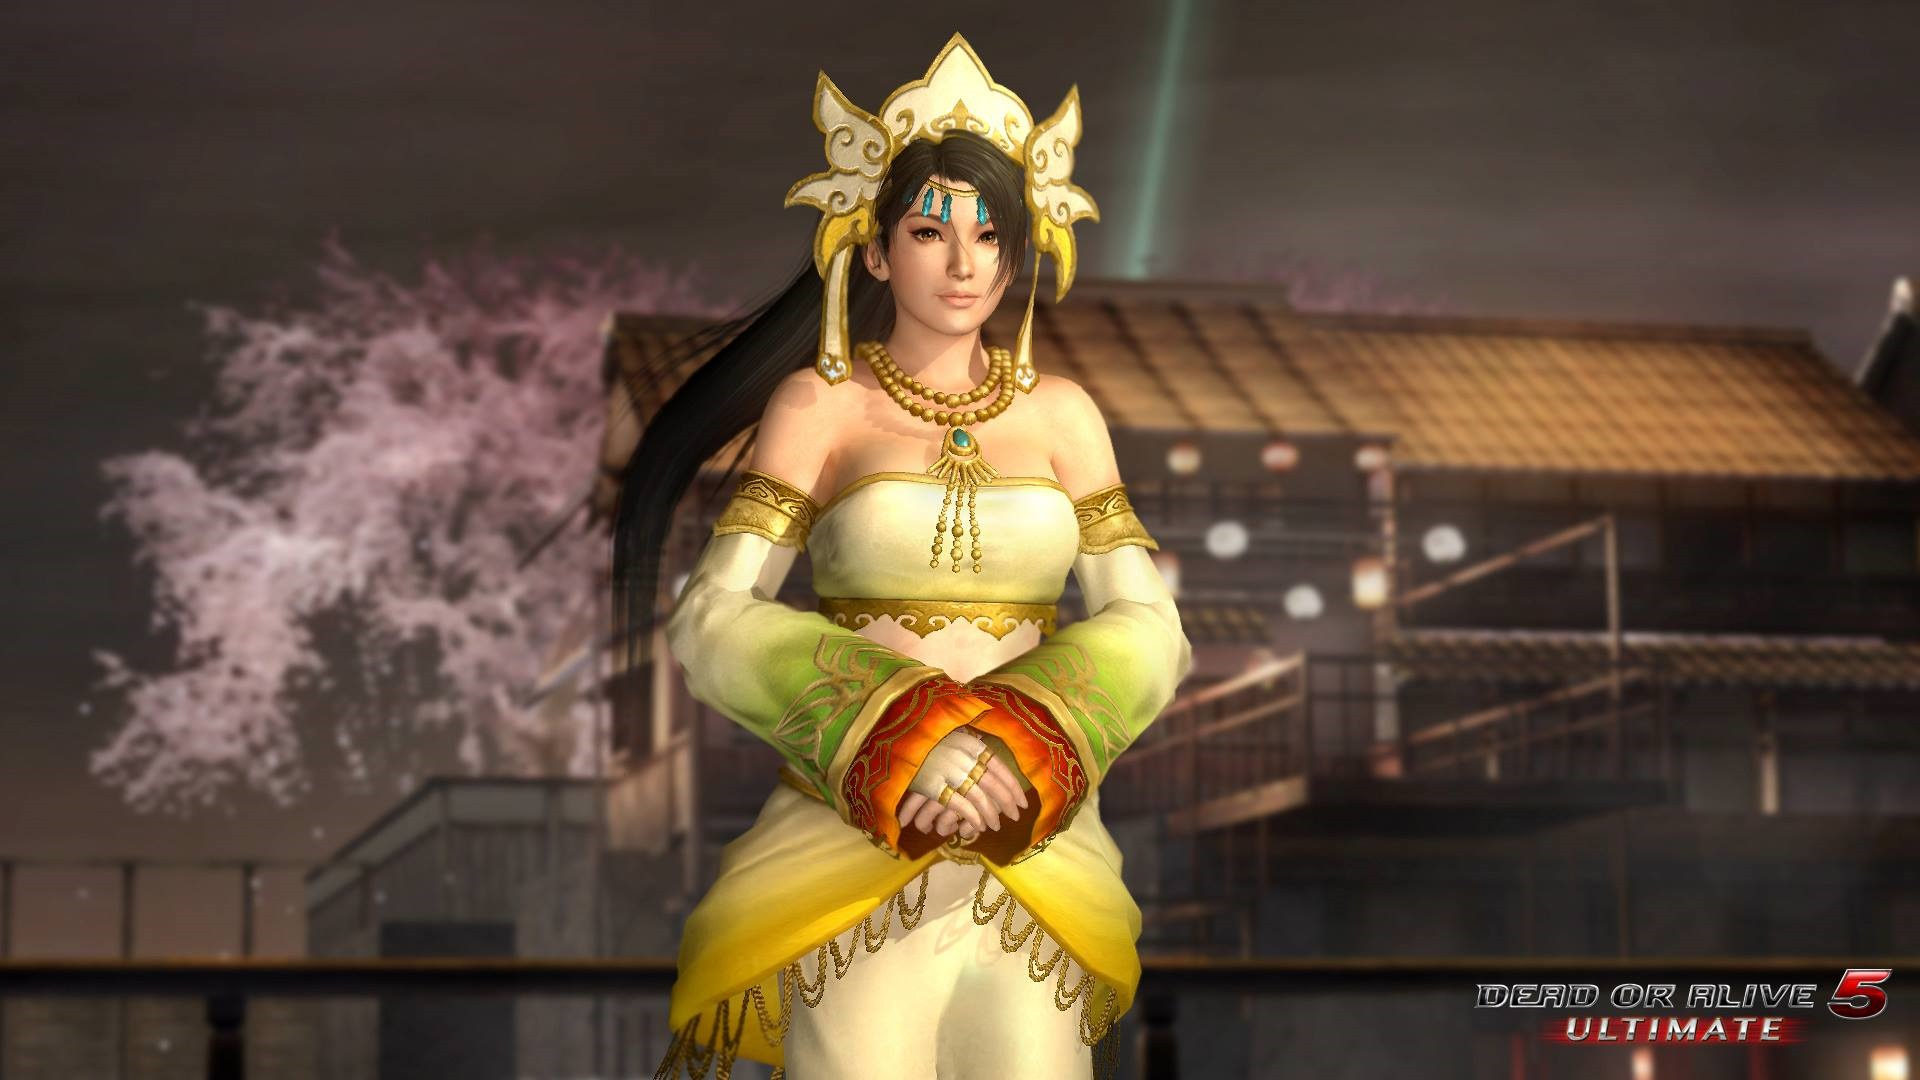 6souls games costumes halloween alive ultimate round last dead dw8